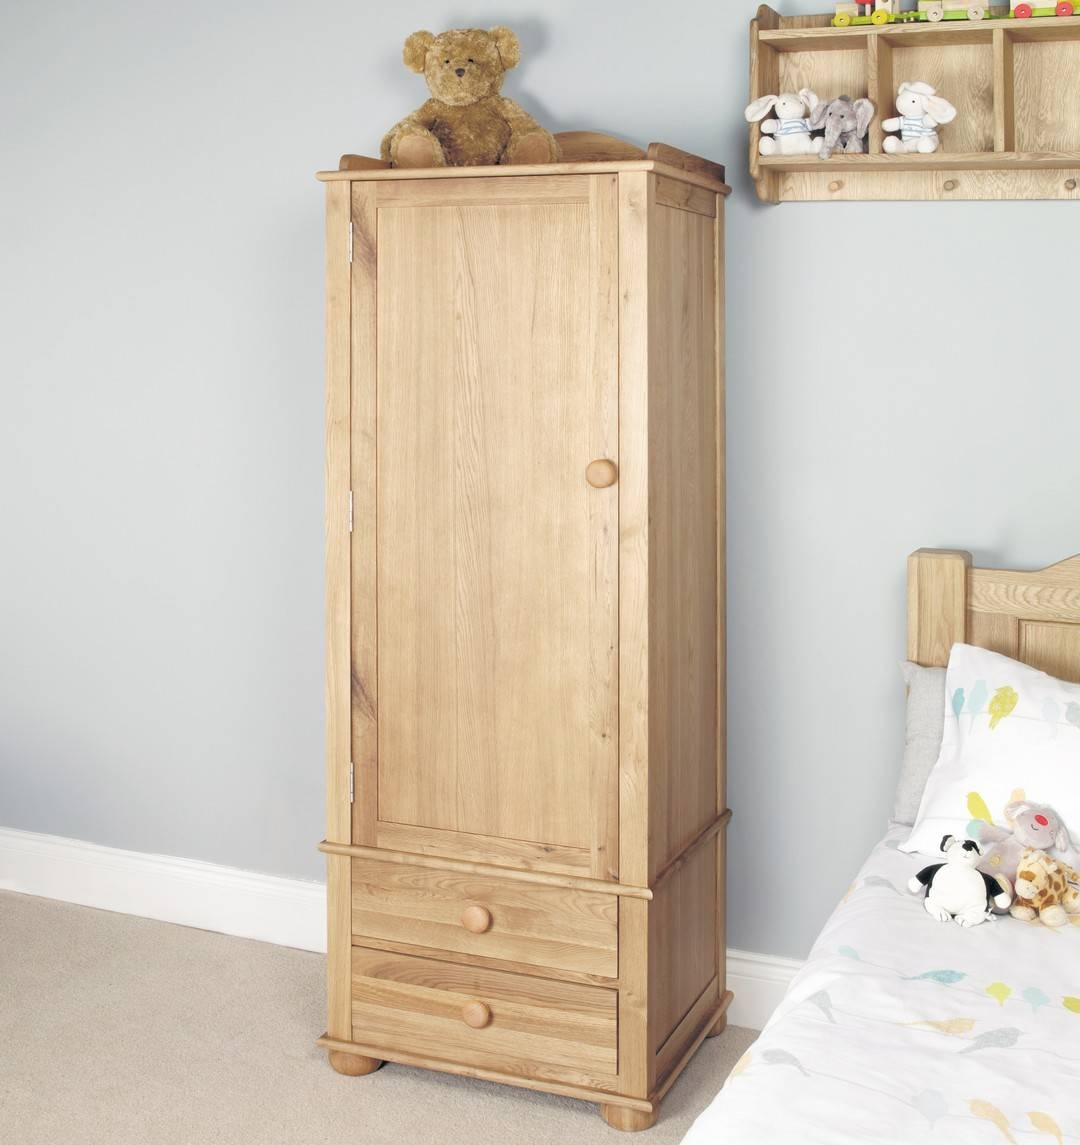 Solid Oak Childrens Single Wardrobe With Regard To Single Oak Wardrobes With Drawers (View 15 of 15)